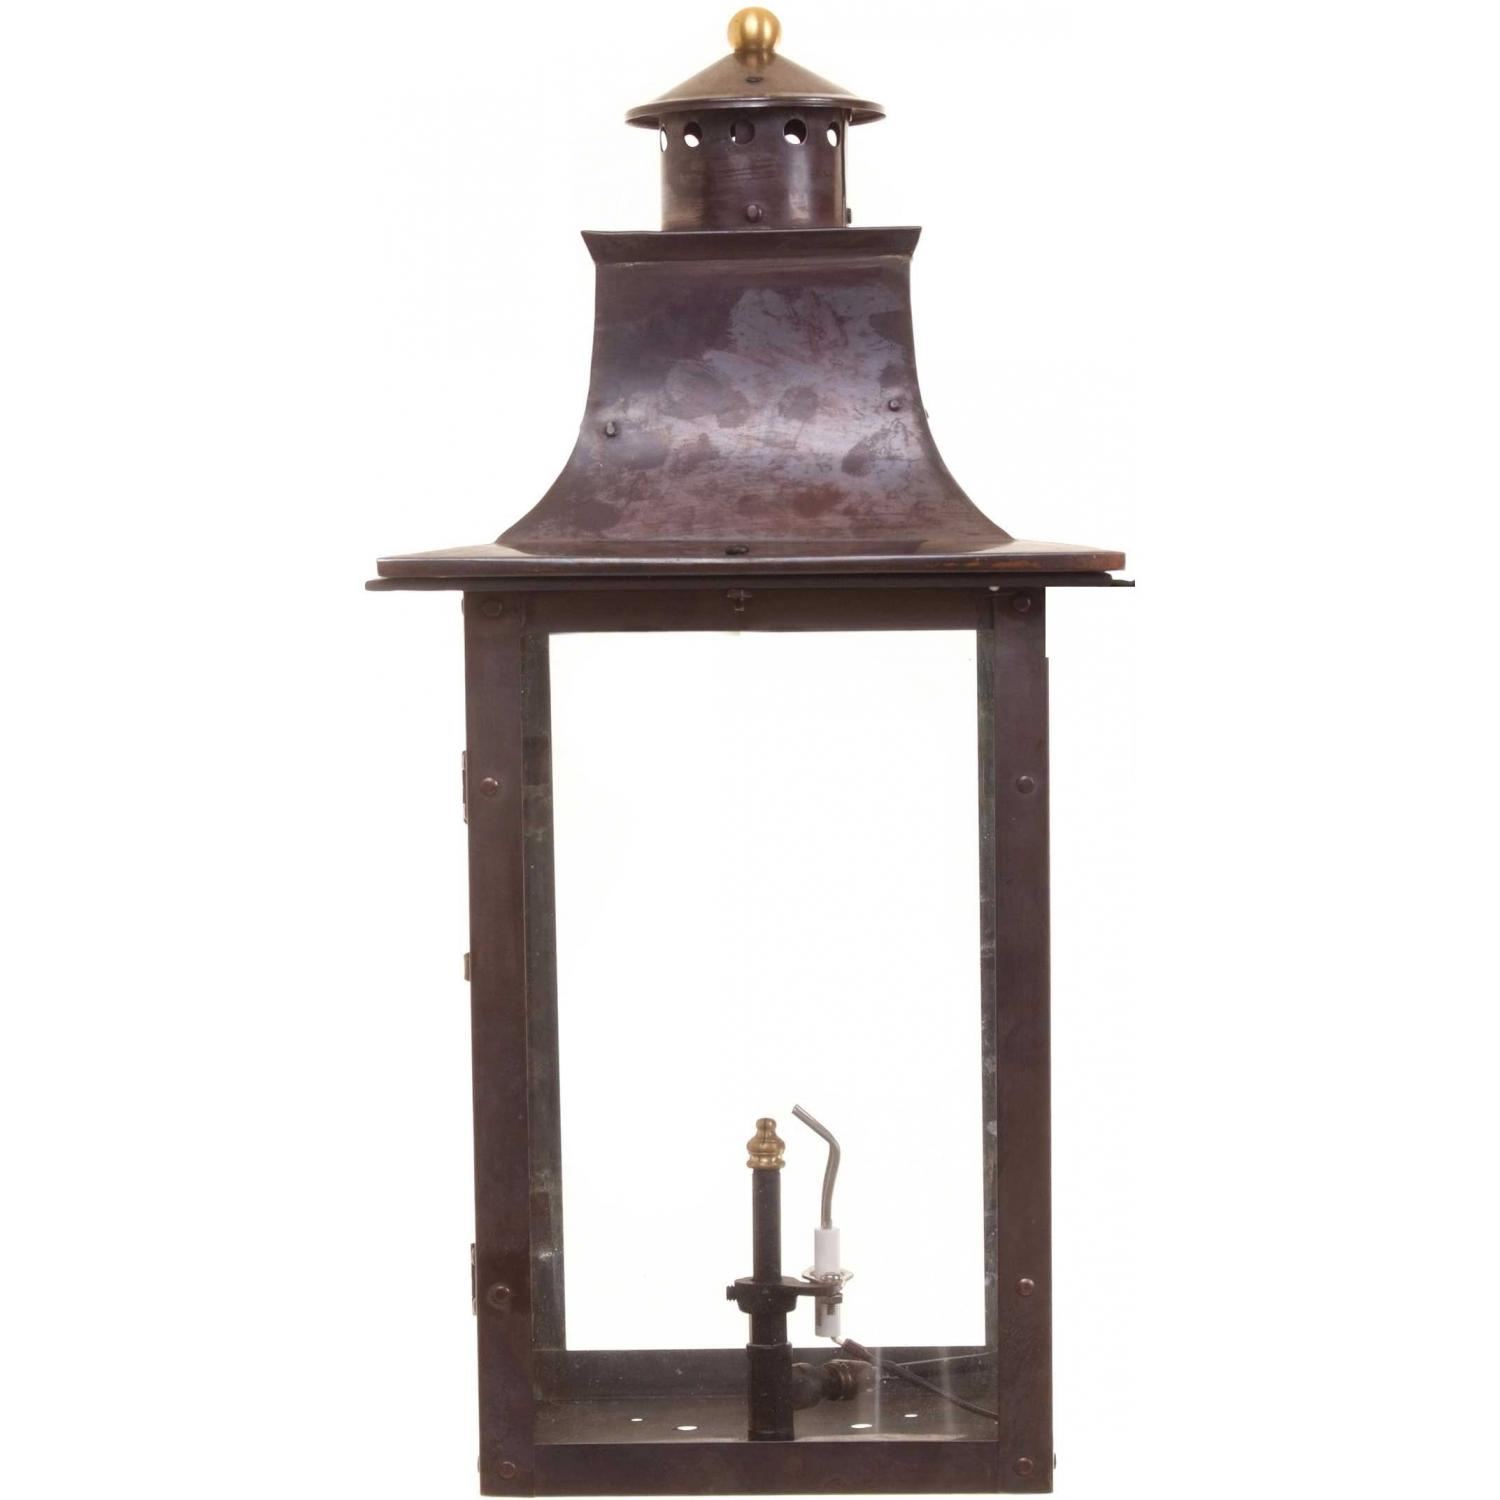 Regency GL21 Faye Rue Small Natural Gas Light With Open Flame Burner And Electronic Ignition On Ceiling Basket Mount